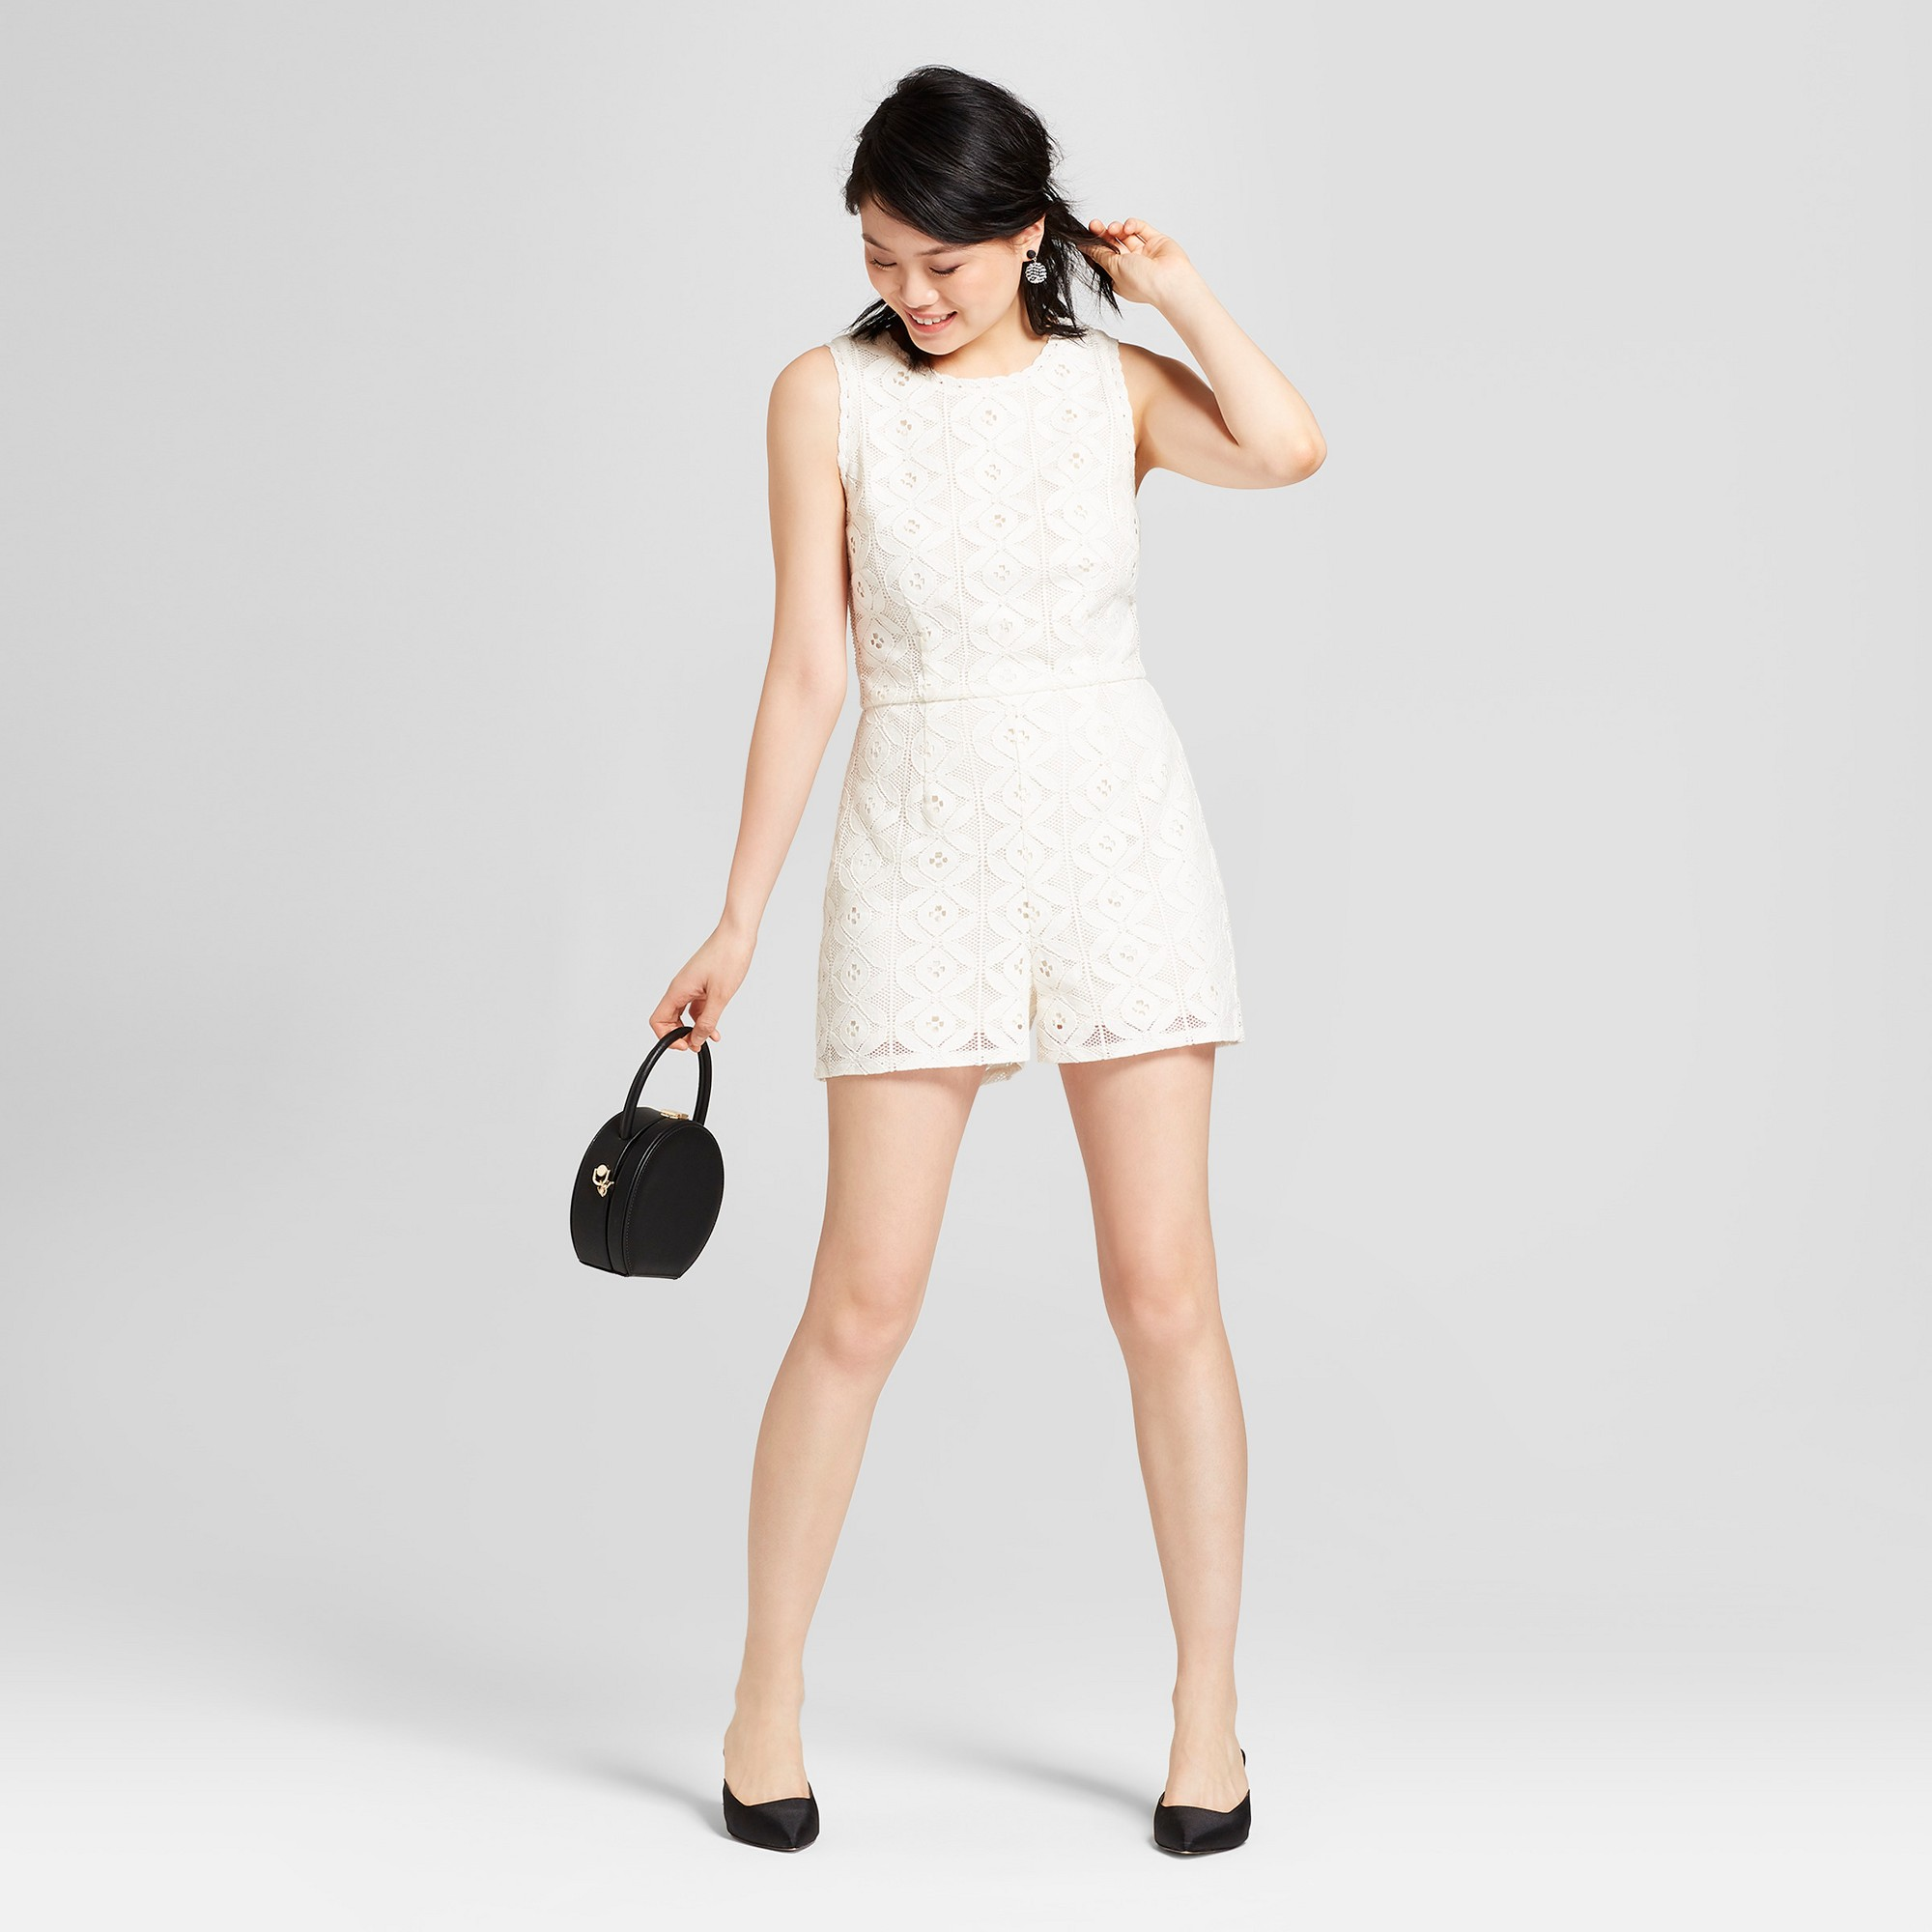 94ae7f2d33 Women's Lace Romper with Back Ties - Xhilaration Ivory L, White ...